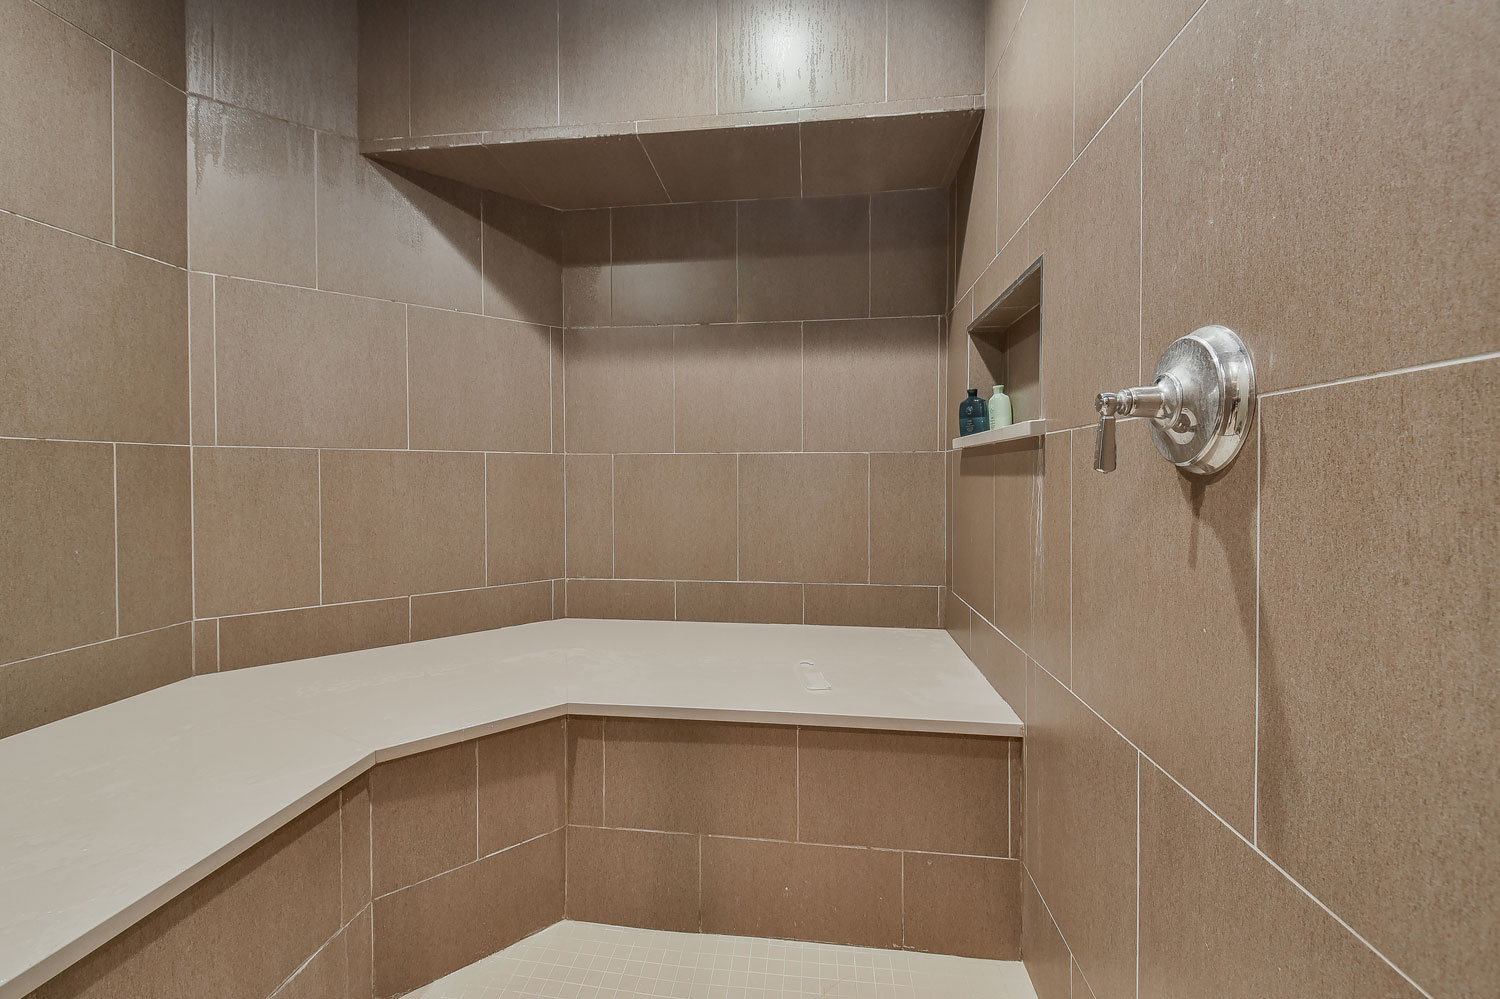 Dennis adelina 39 s basement bathroom pictures home for Building a sauna in the basement